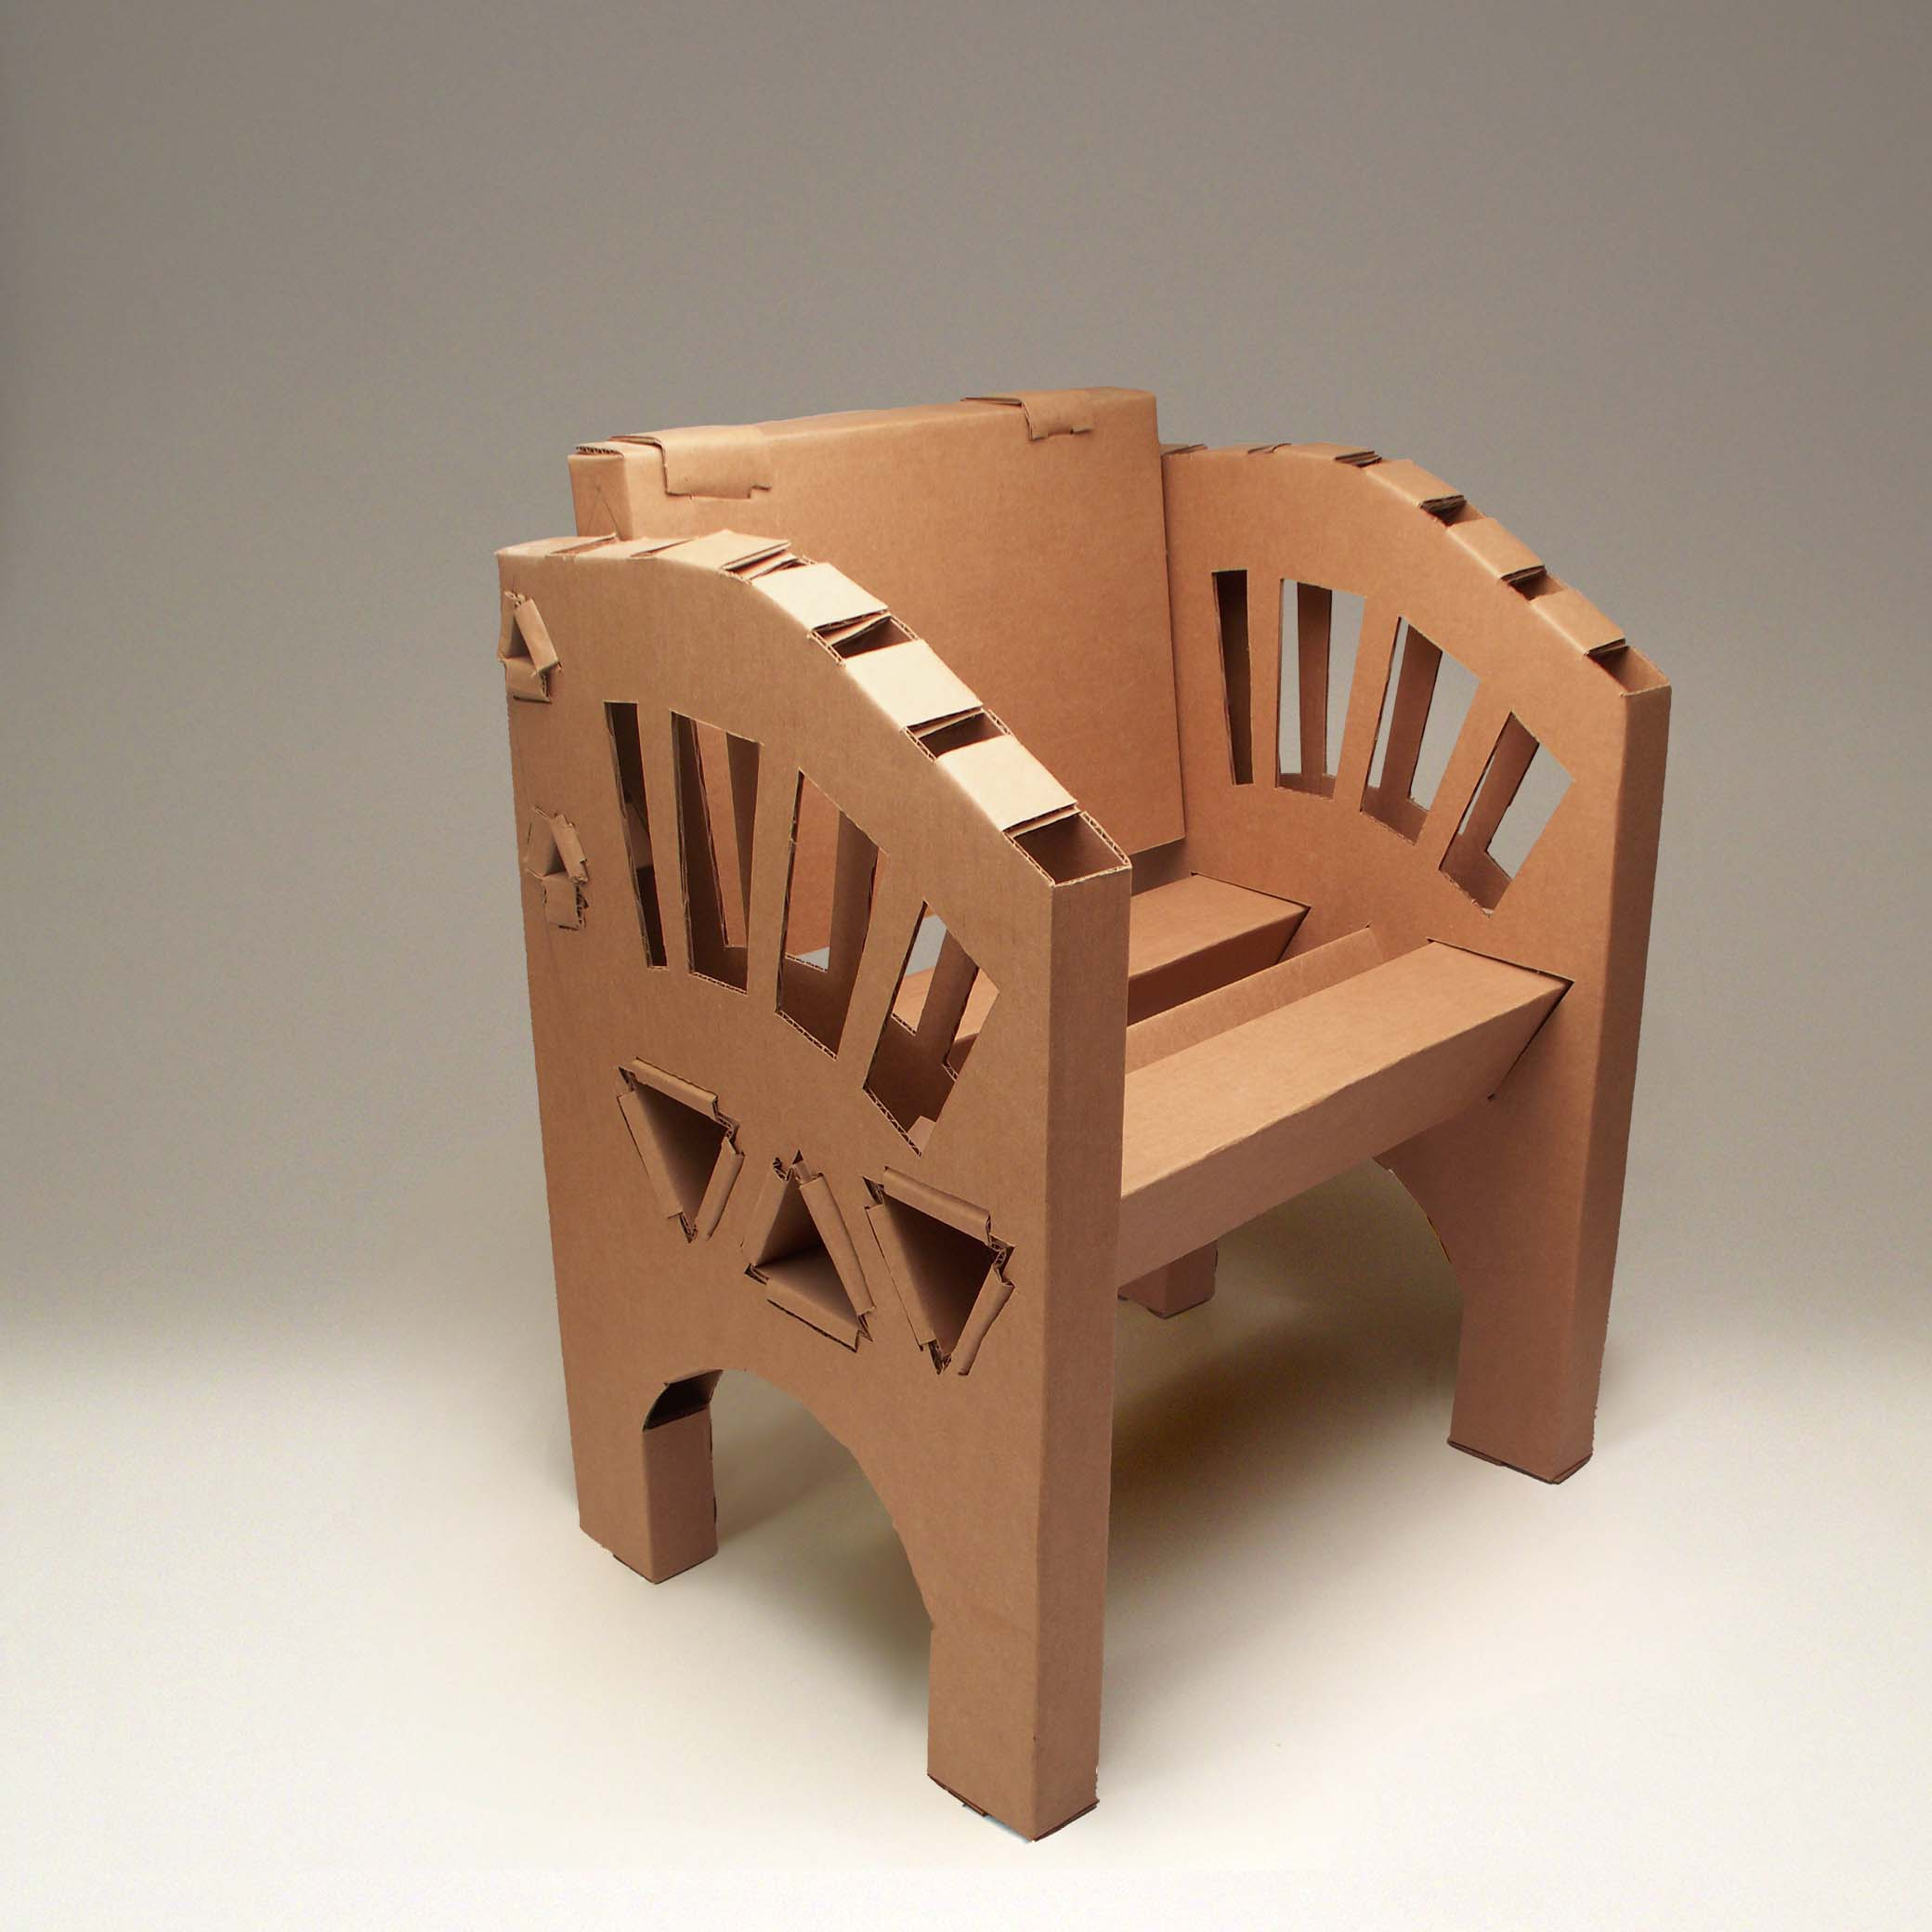 Corrugated Cardboard Furniture Industrial Design Studio By Sammis Richdale At Coroflotcom